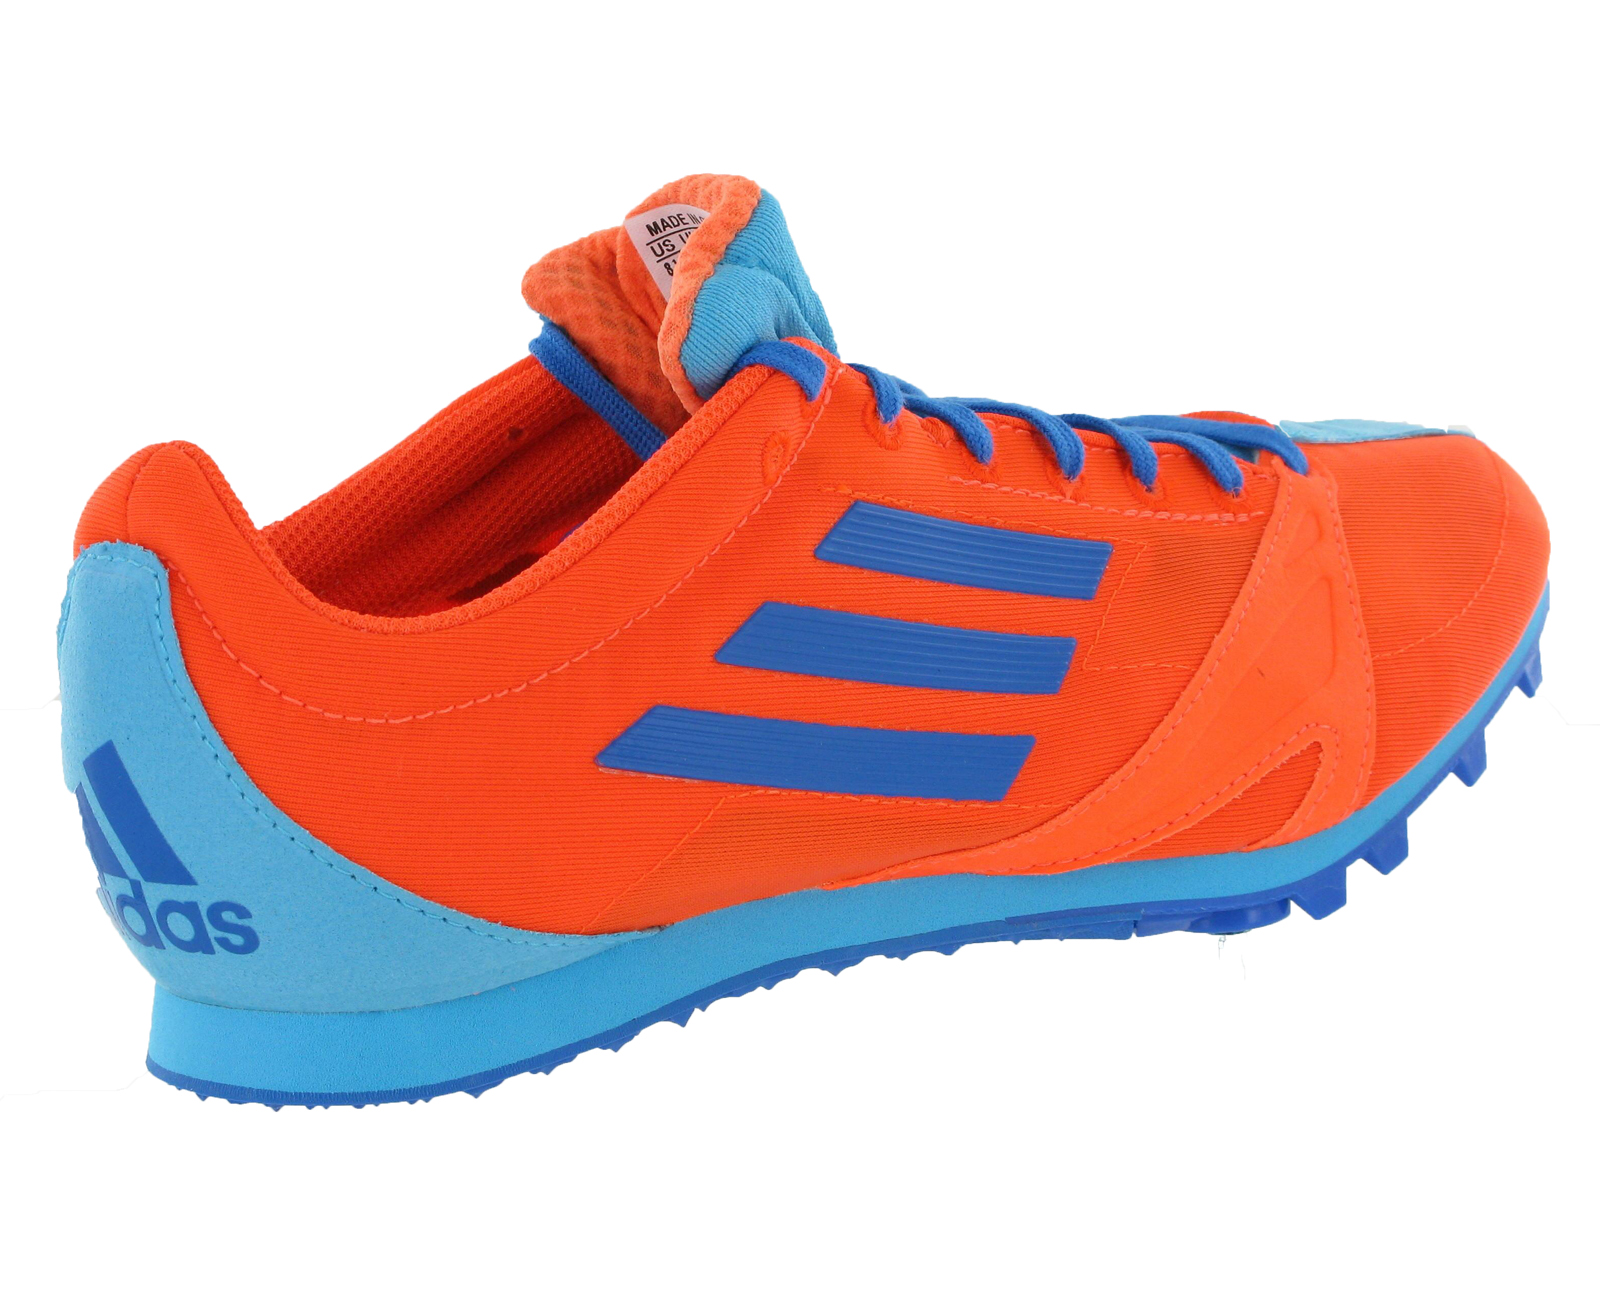 adidas size 5 boys shoes